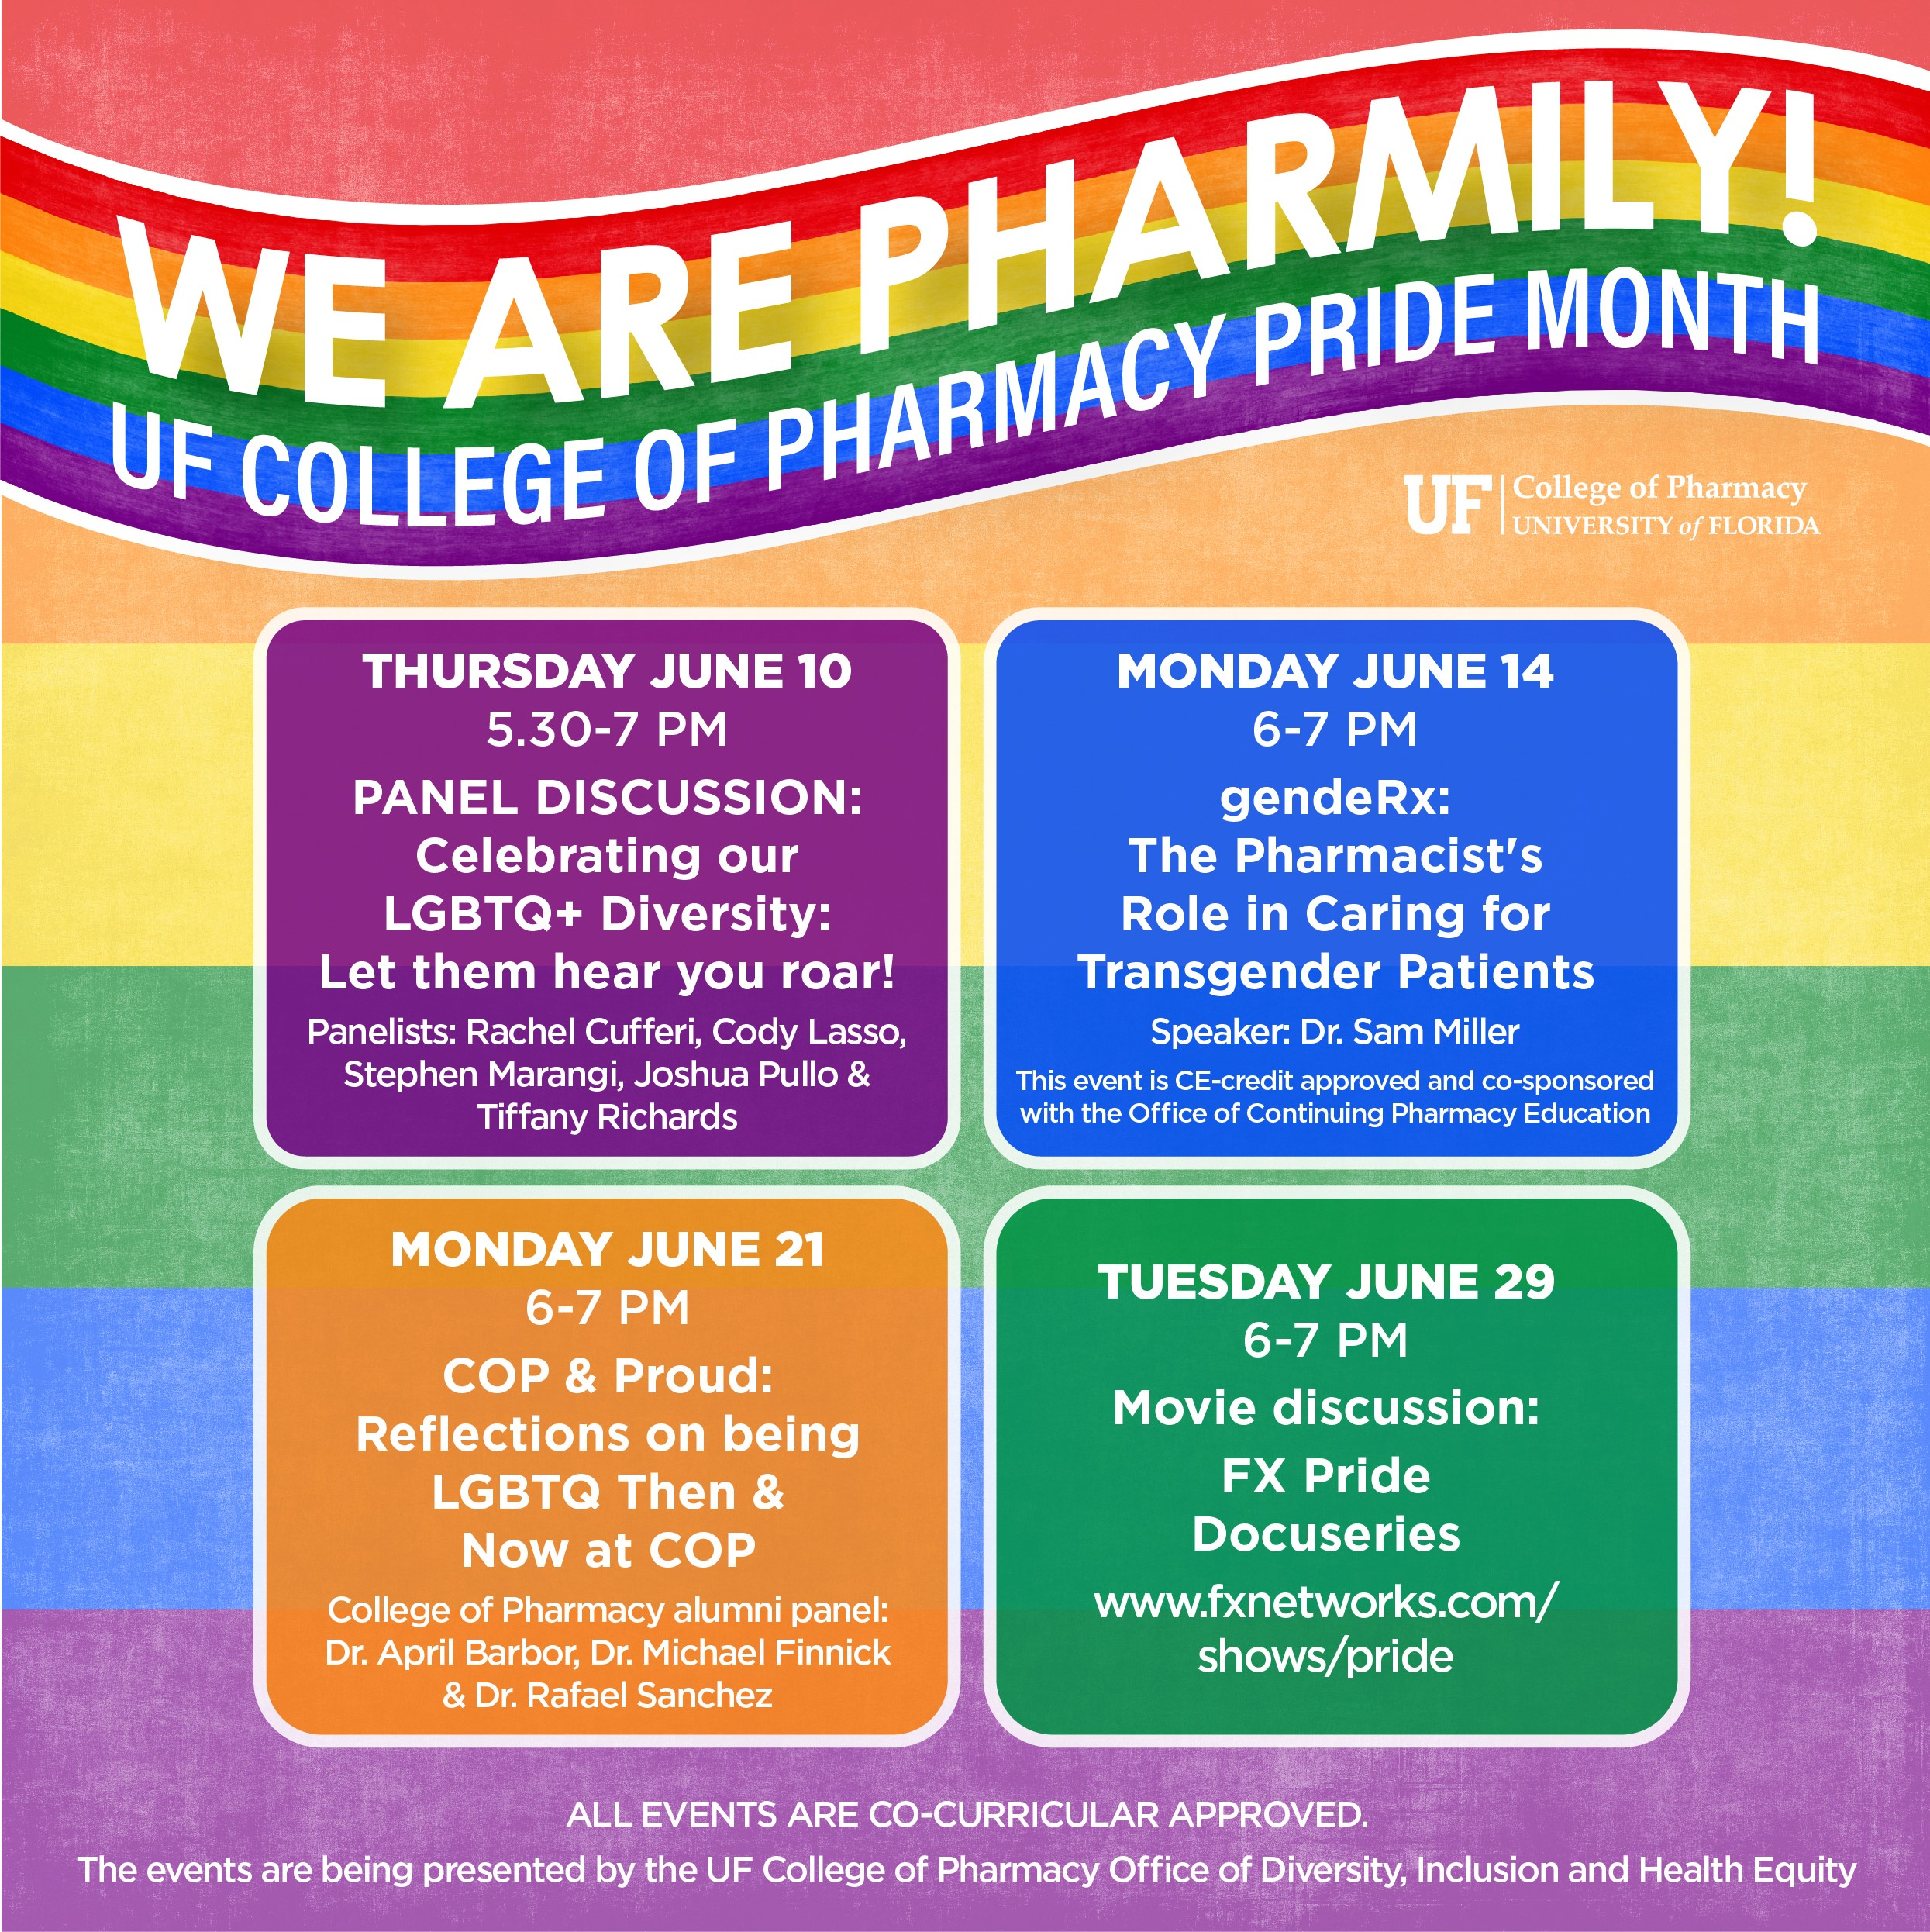 We are Pharmily Event Schedule